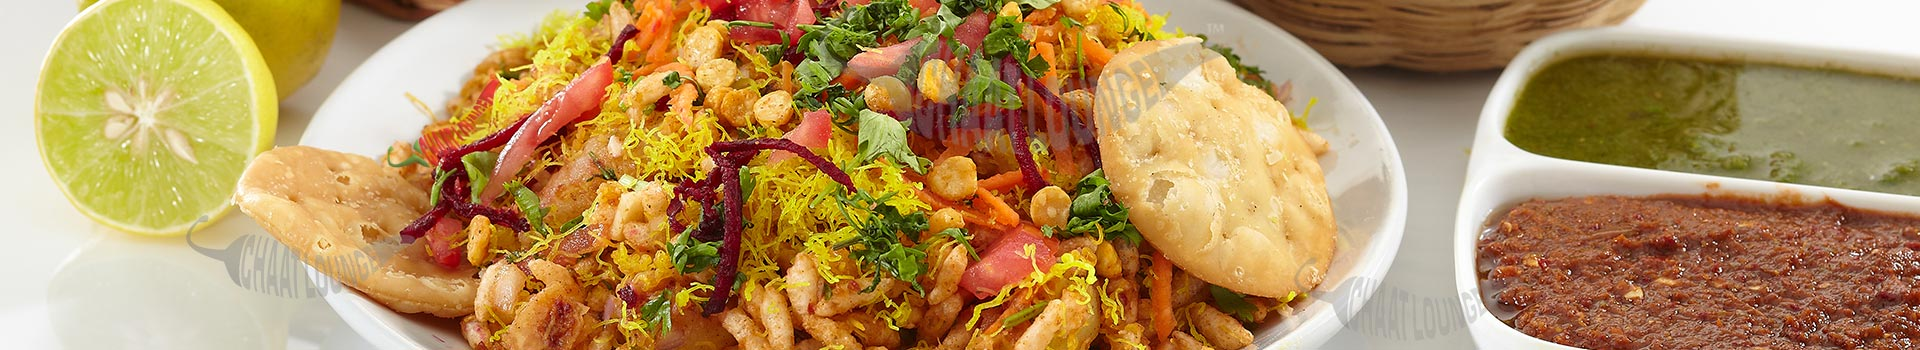 Chaat Menu, Fast Food Franchise India, Chaat Franchise Menu